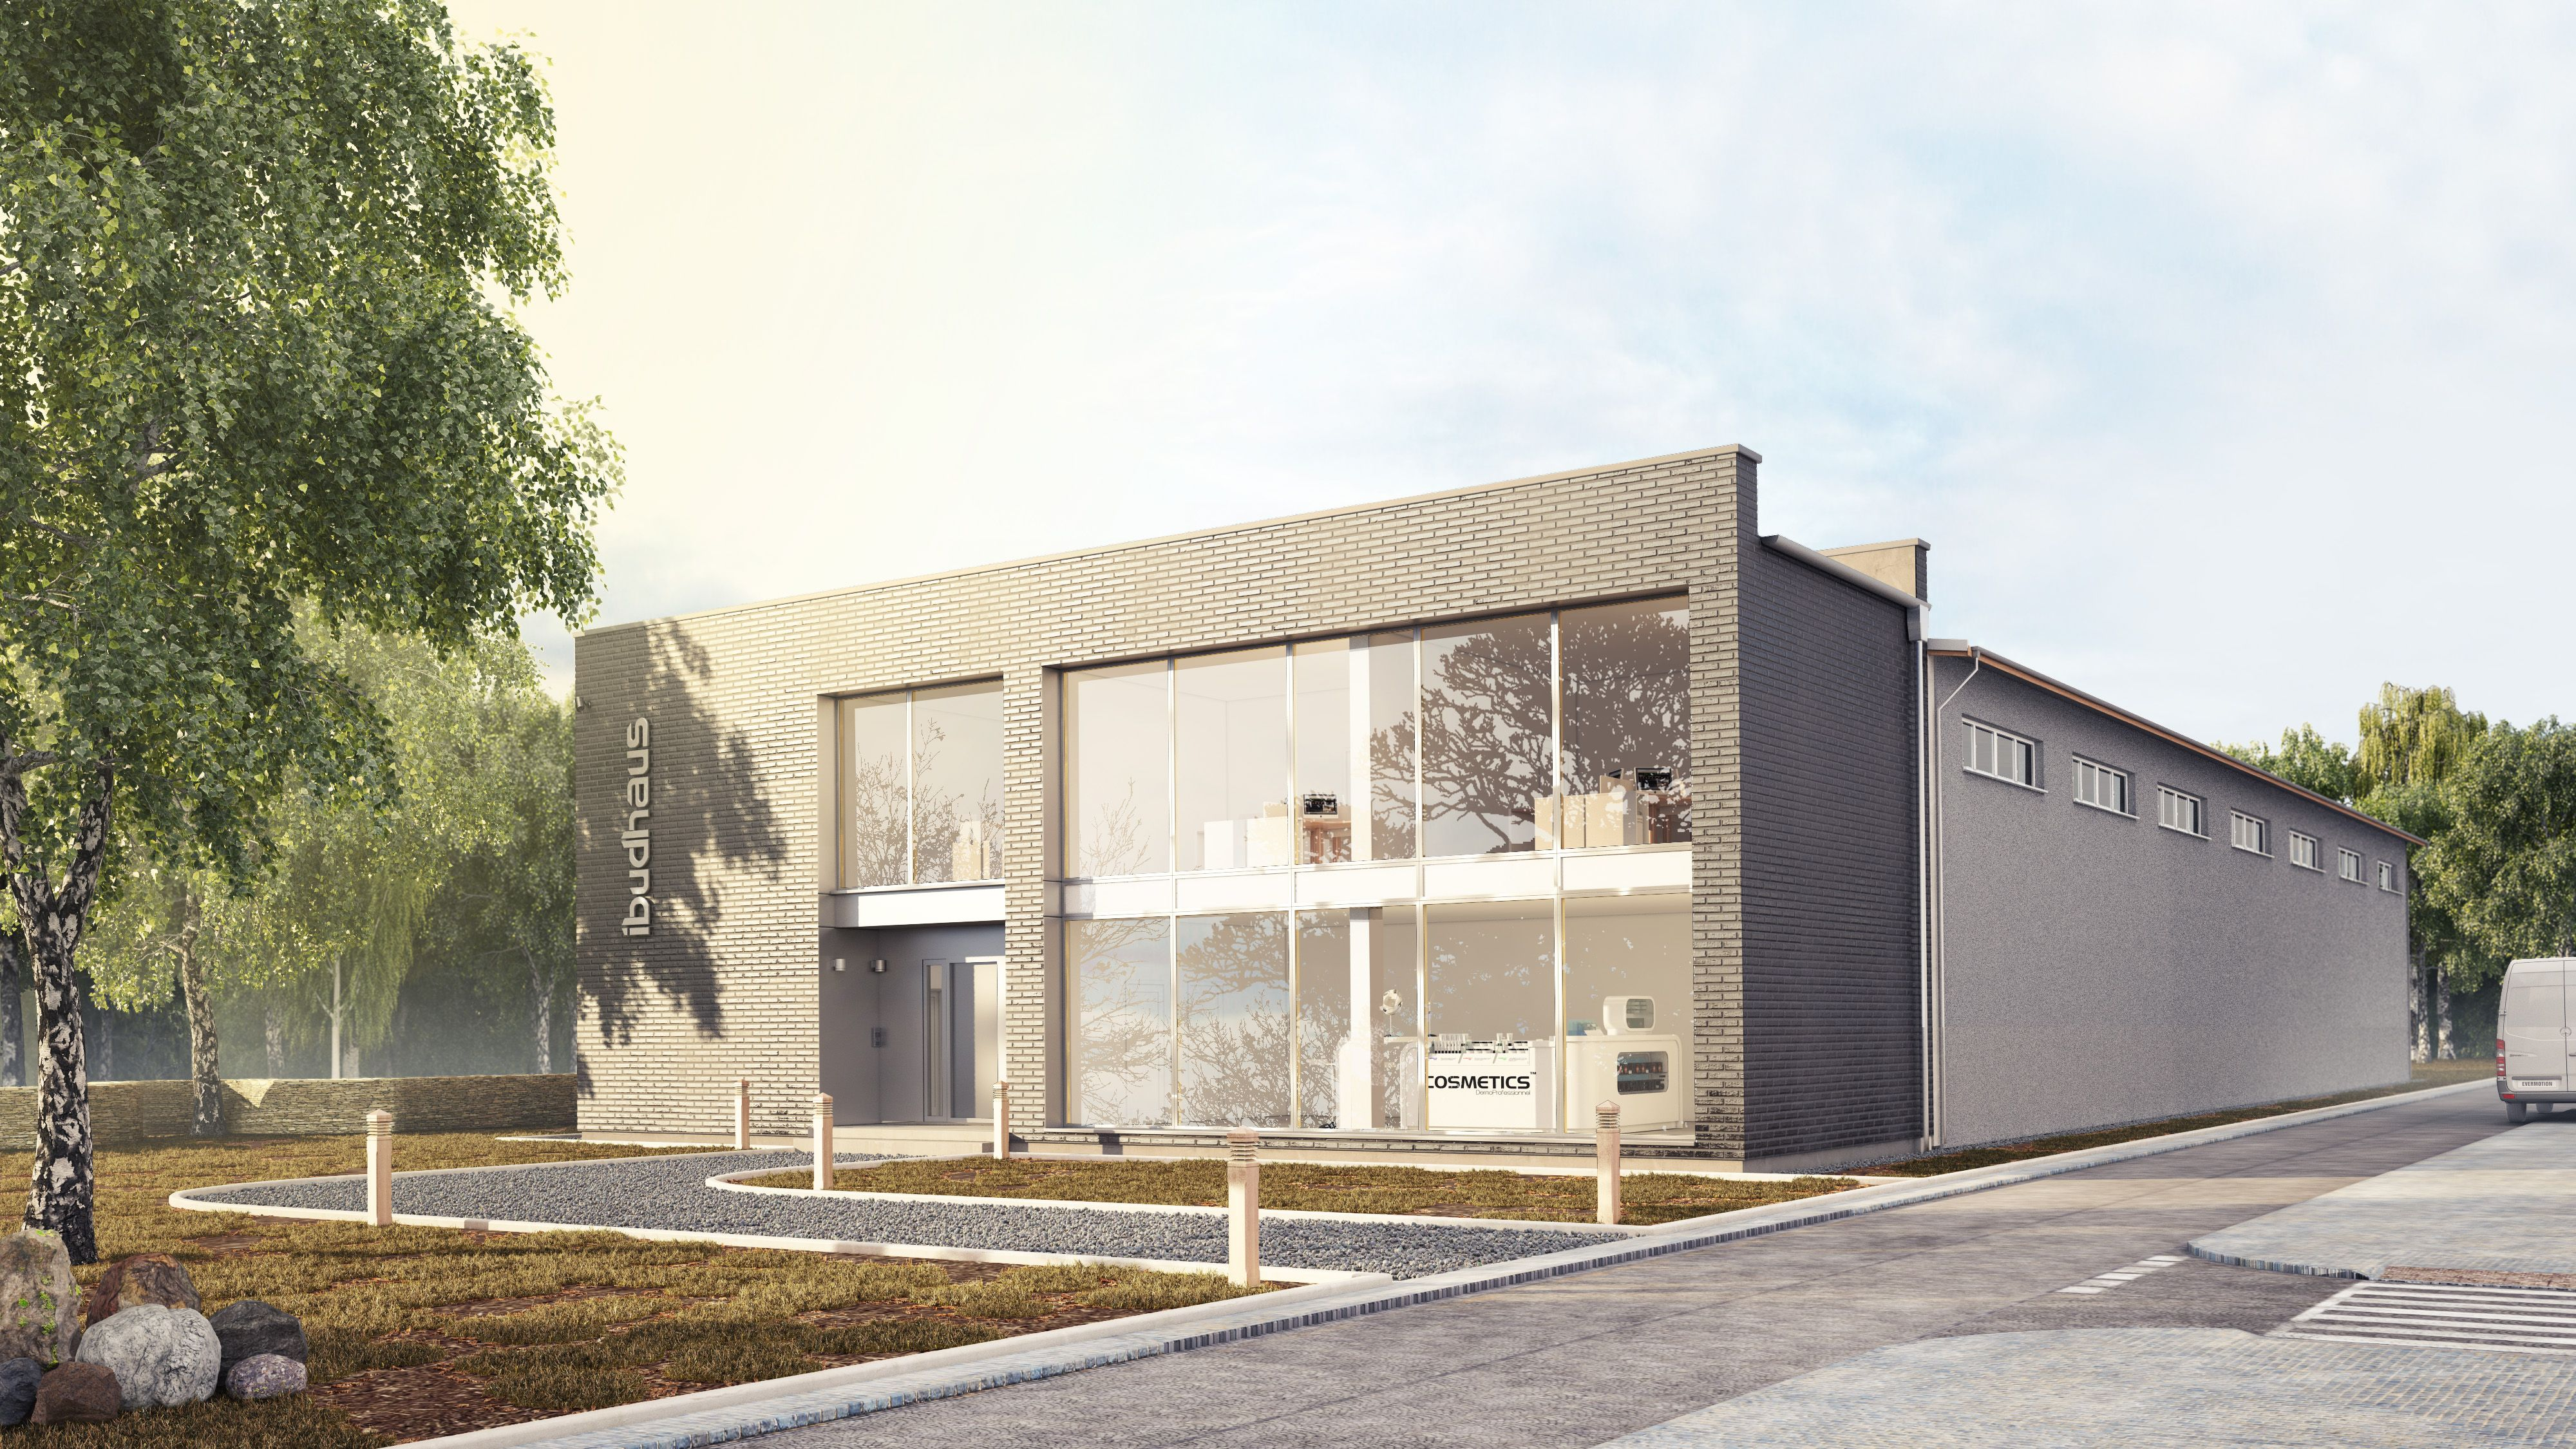 Exterior Warehouse rendering | Architectural 3D Visualization ...